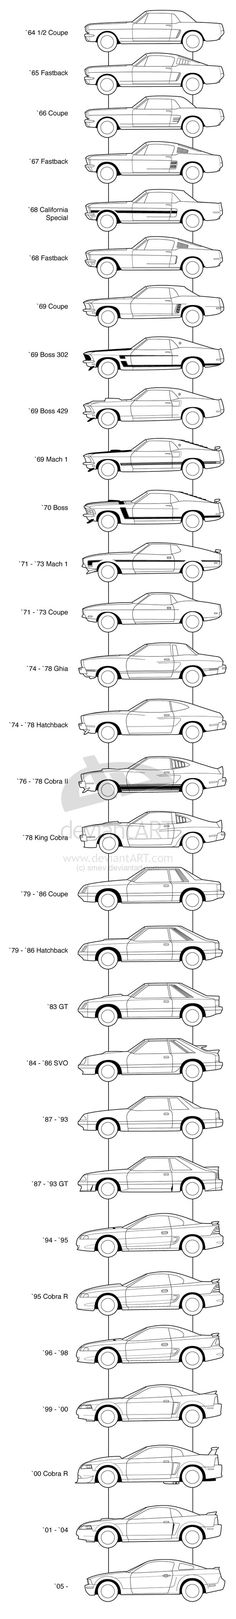 Cars Discover Mustang Guide by smev on DeviantArt Mustang Cobra, Mustang Fastback, Ford Mustang Gt, 2005 Mustang, Mustang Boss, Ford Gt, Car Ford, Ford Trucks, Porsche Cayman 987